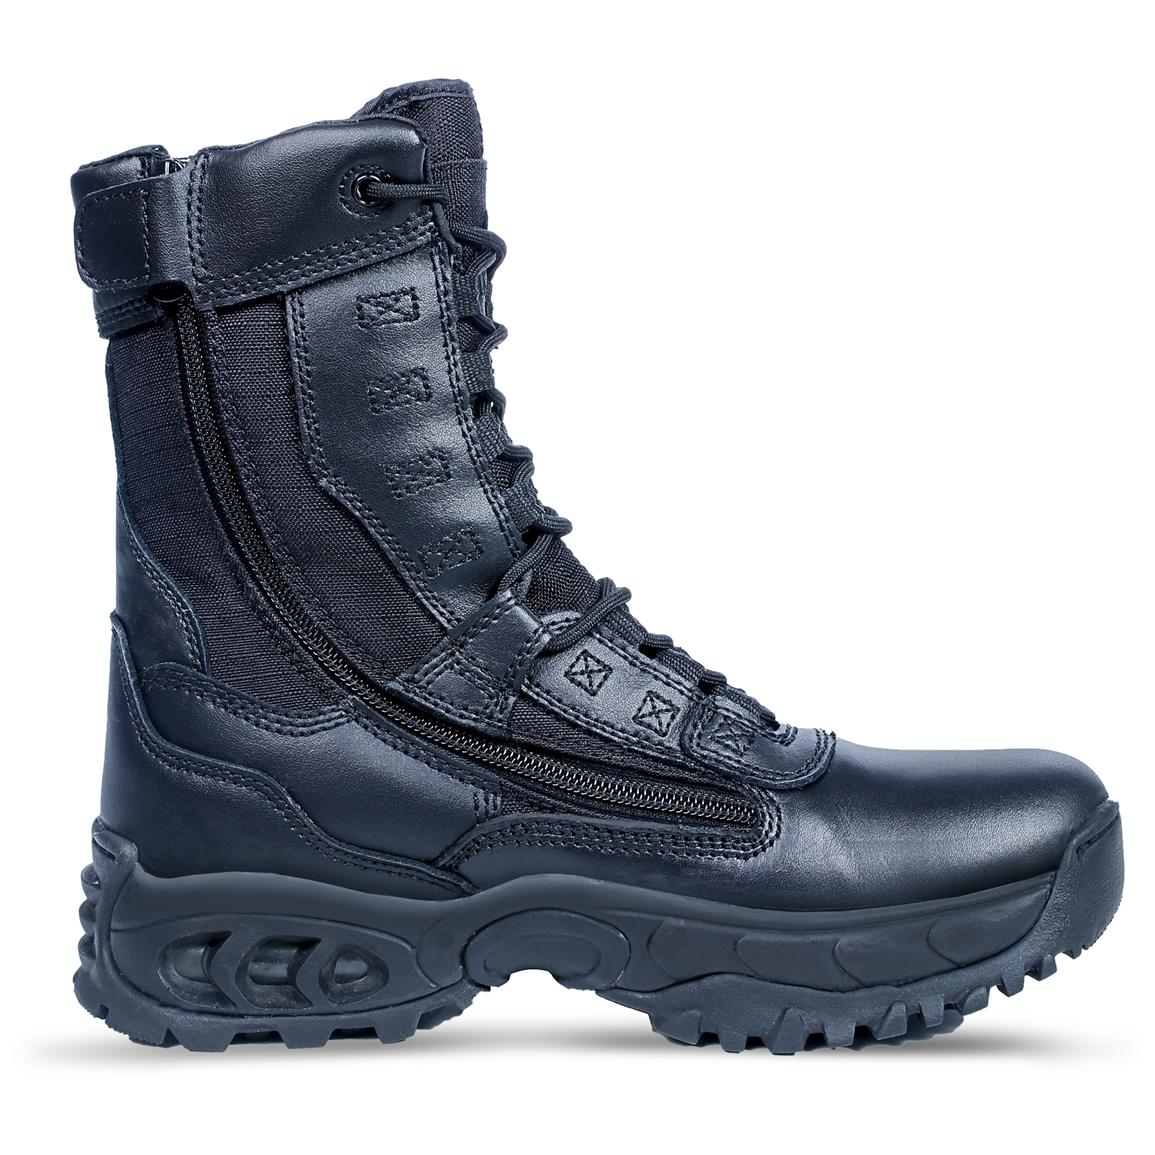 Ridge Outdoors Men's Air-Tac Ghost Side Zip Steel Toe Tactical Boots, Black